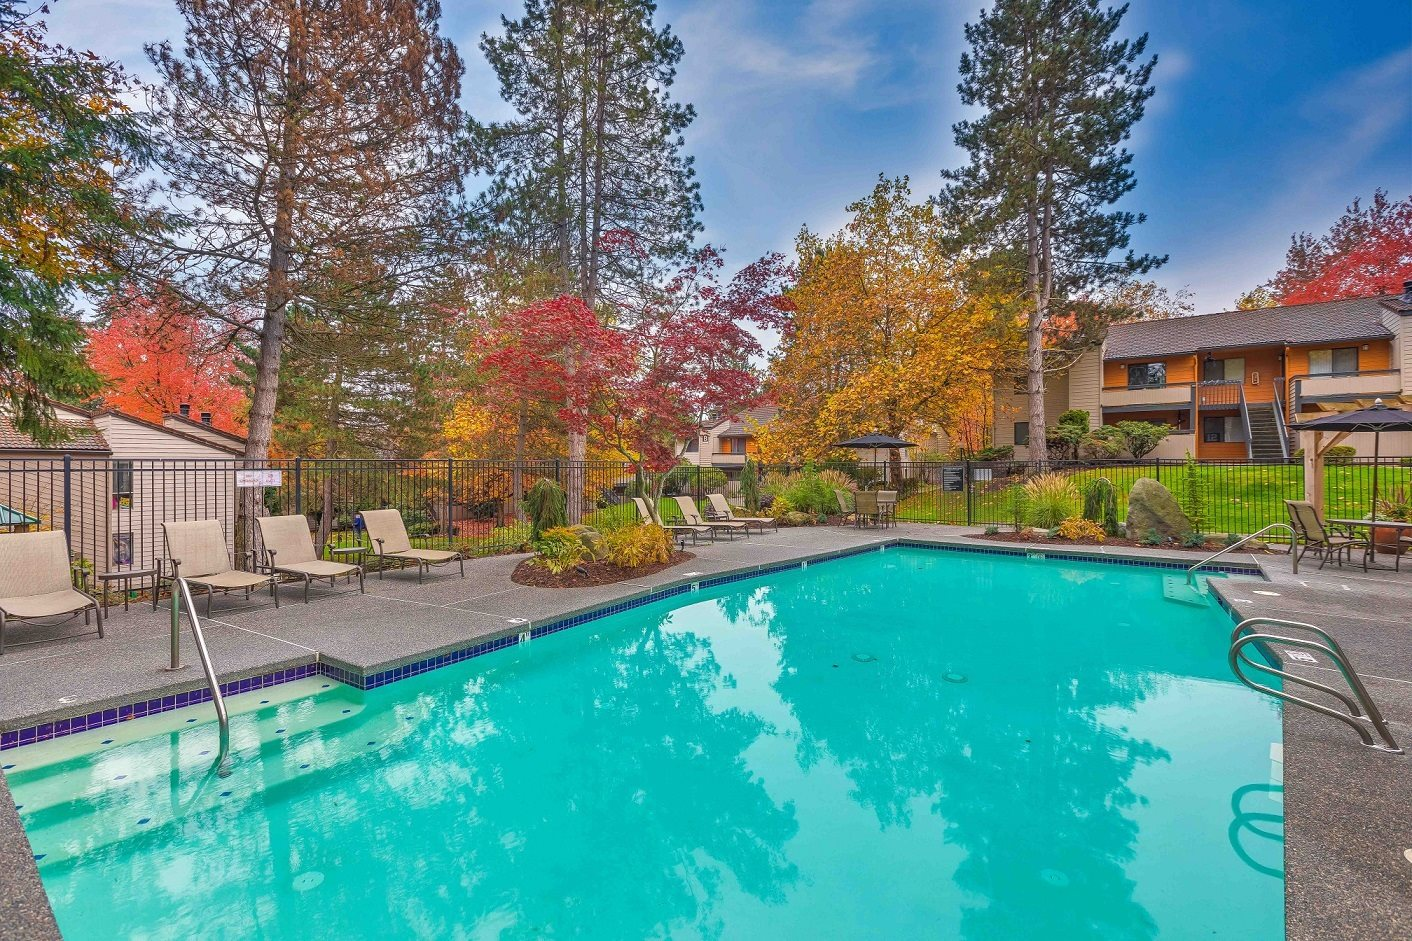 Lynnwood Apartments for Rent - Alderwood Park Swimming Pool With Lush Landscaping and Poolside Seating